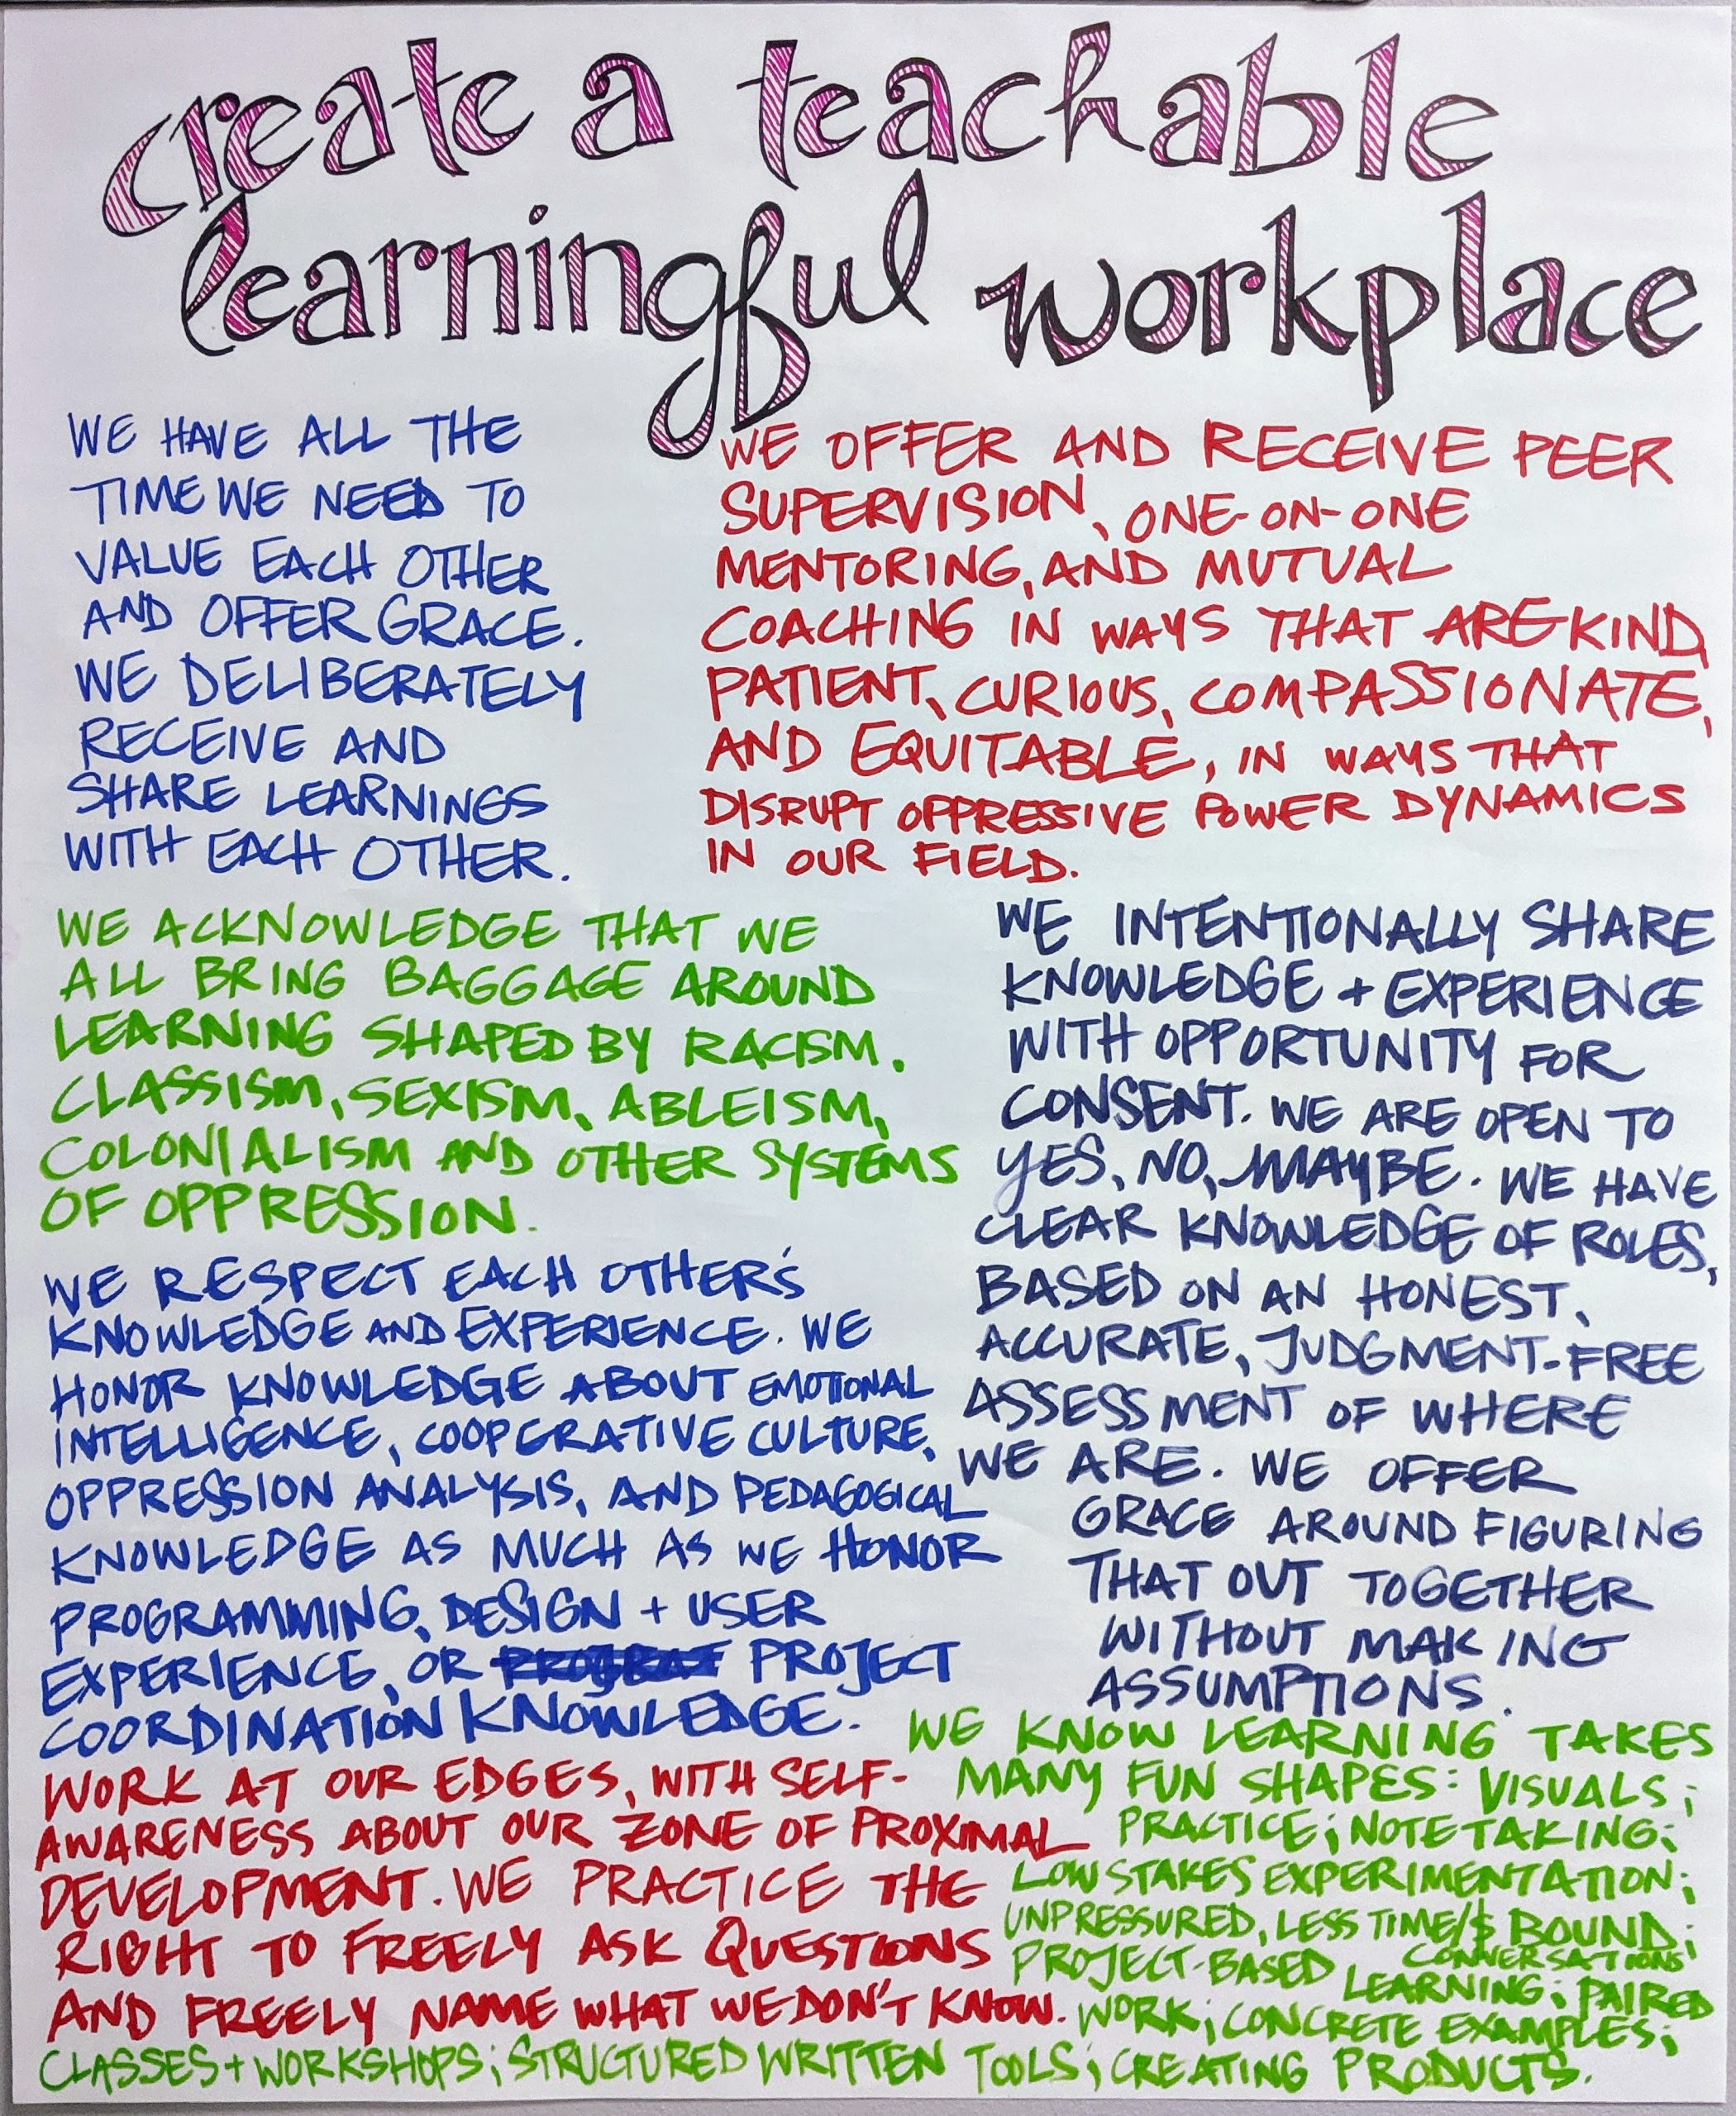 teachable-learningful-workplace-poster